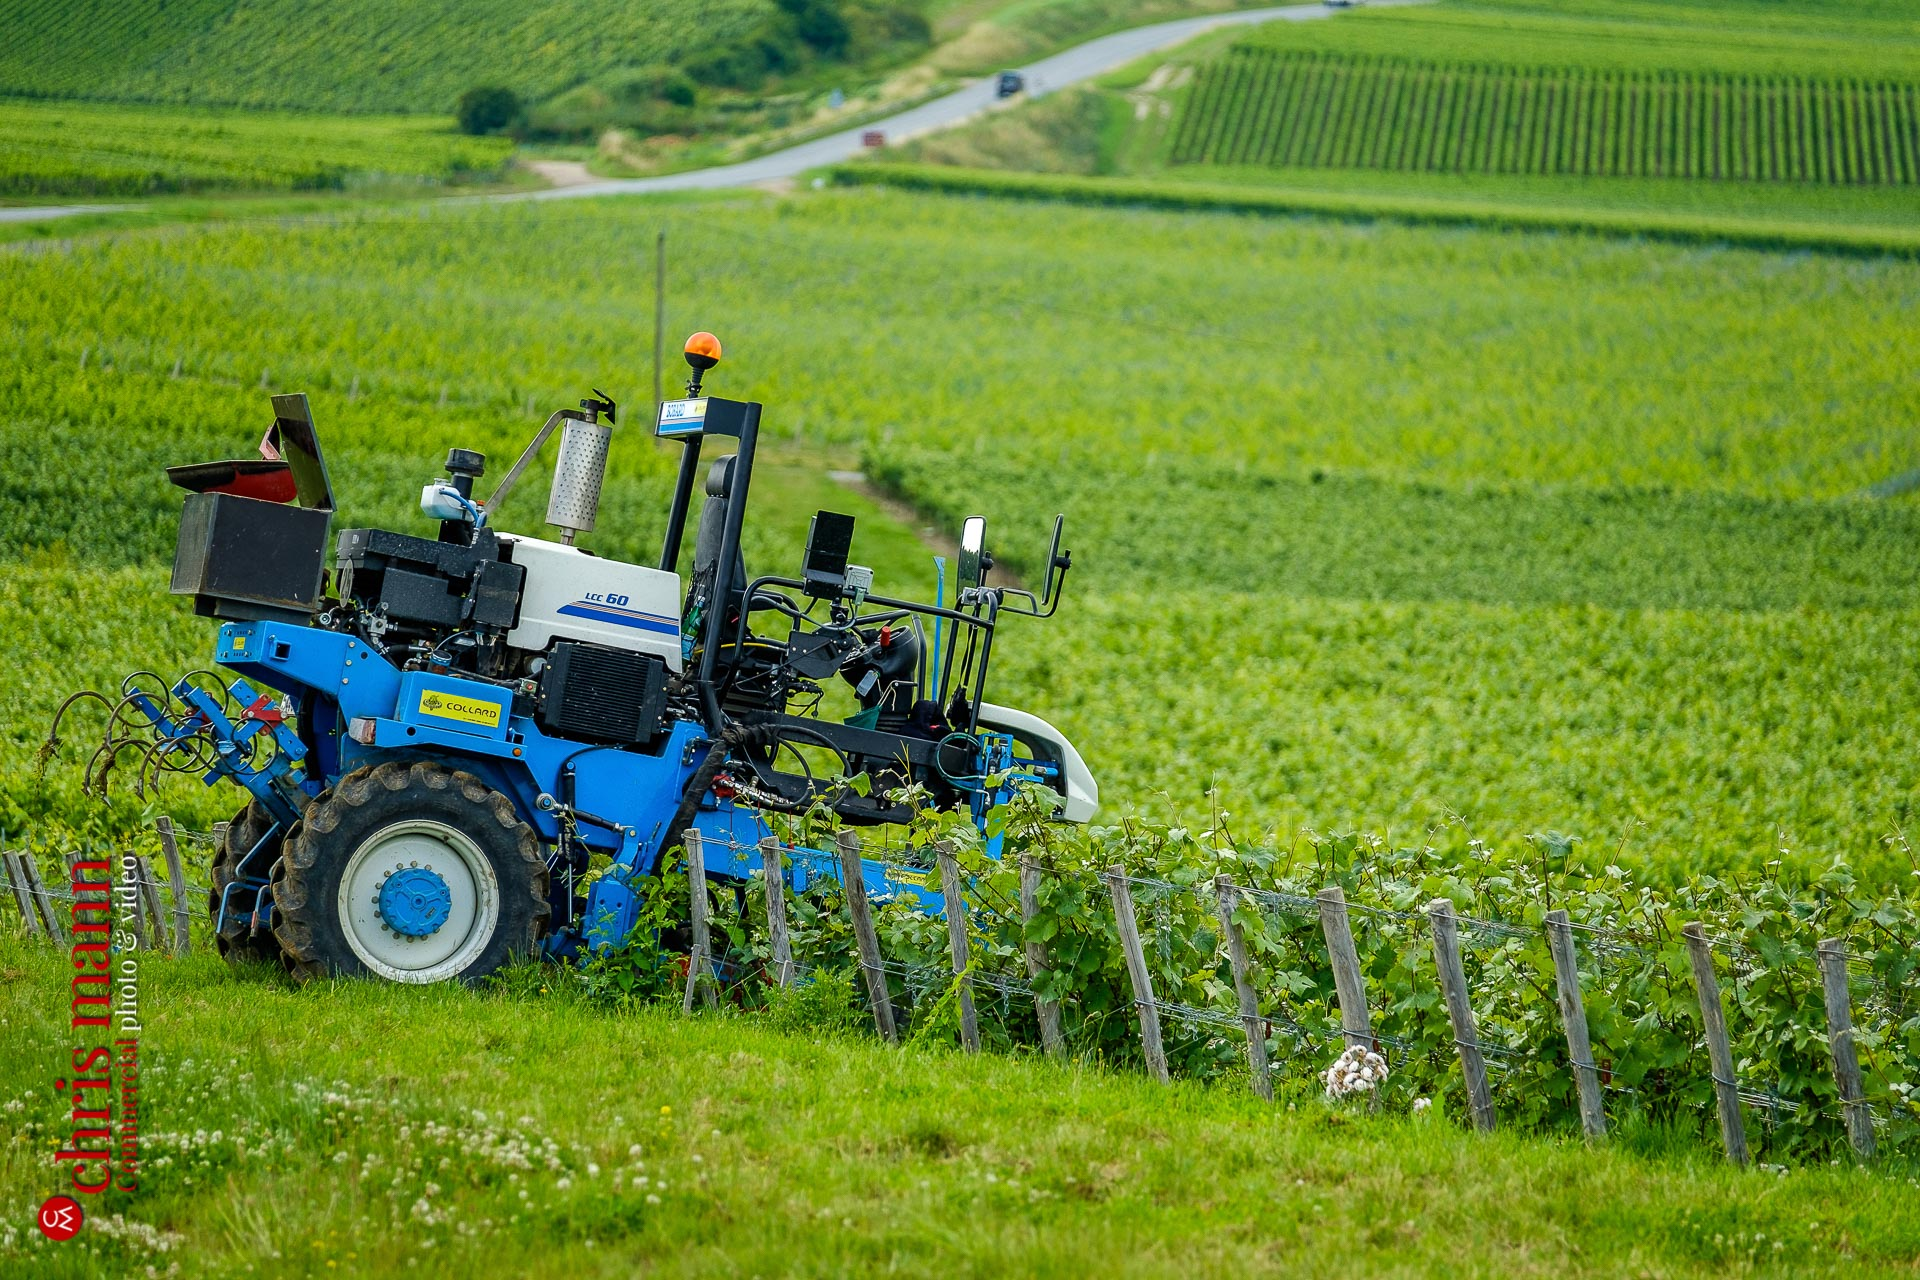 tractor in Champagne vineyards near Reims Picardy France